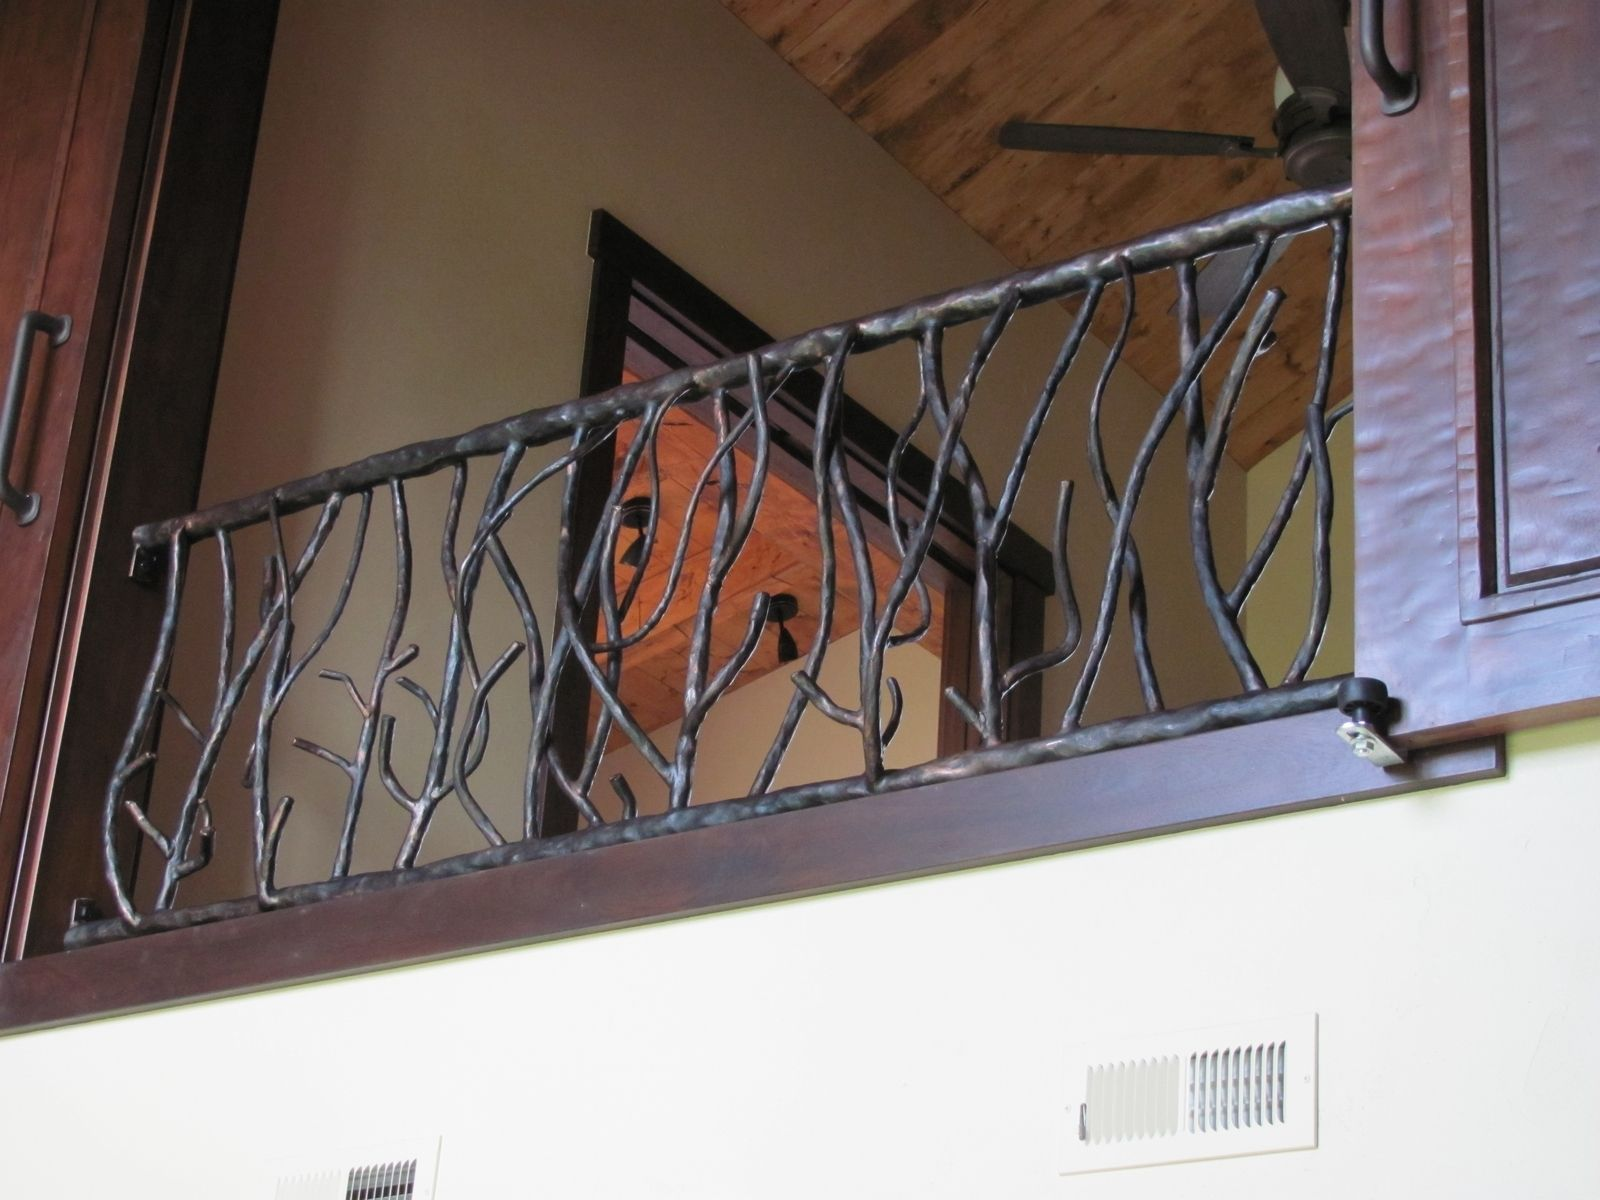 Hand Made Tree Branch Outdoor Railing By Iron Mountain Forge .